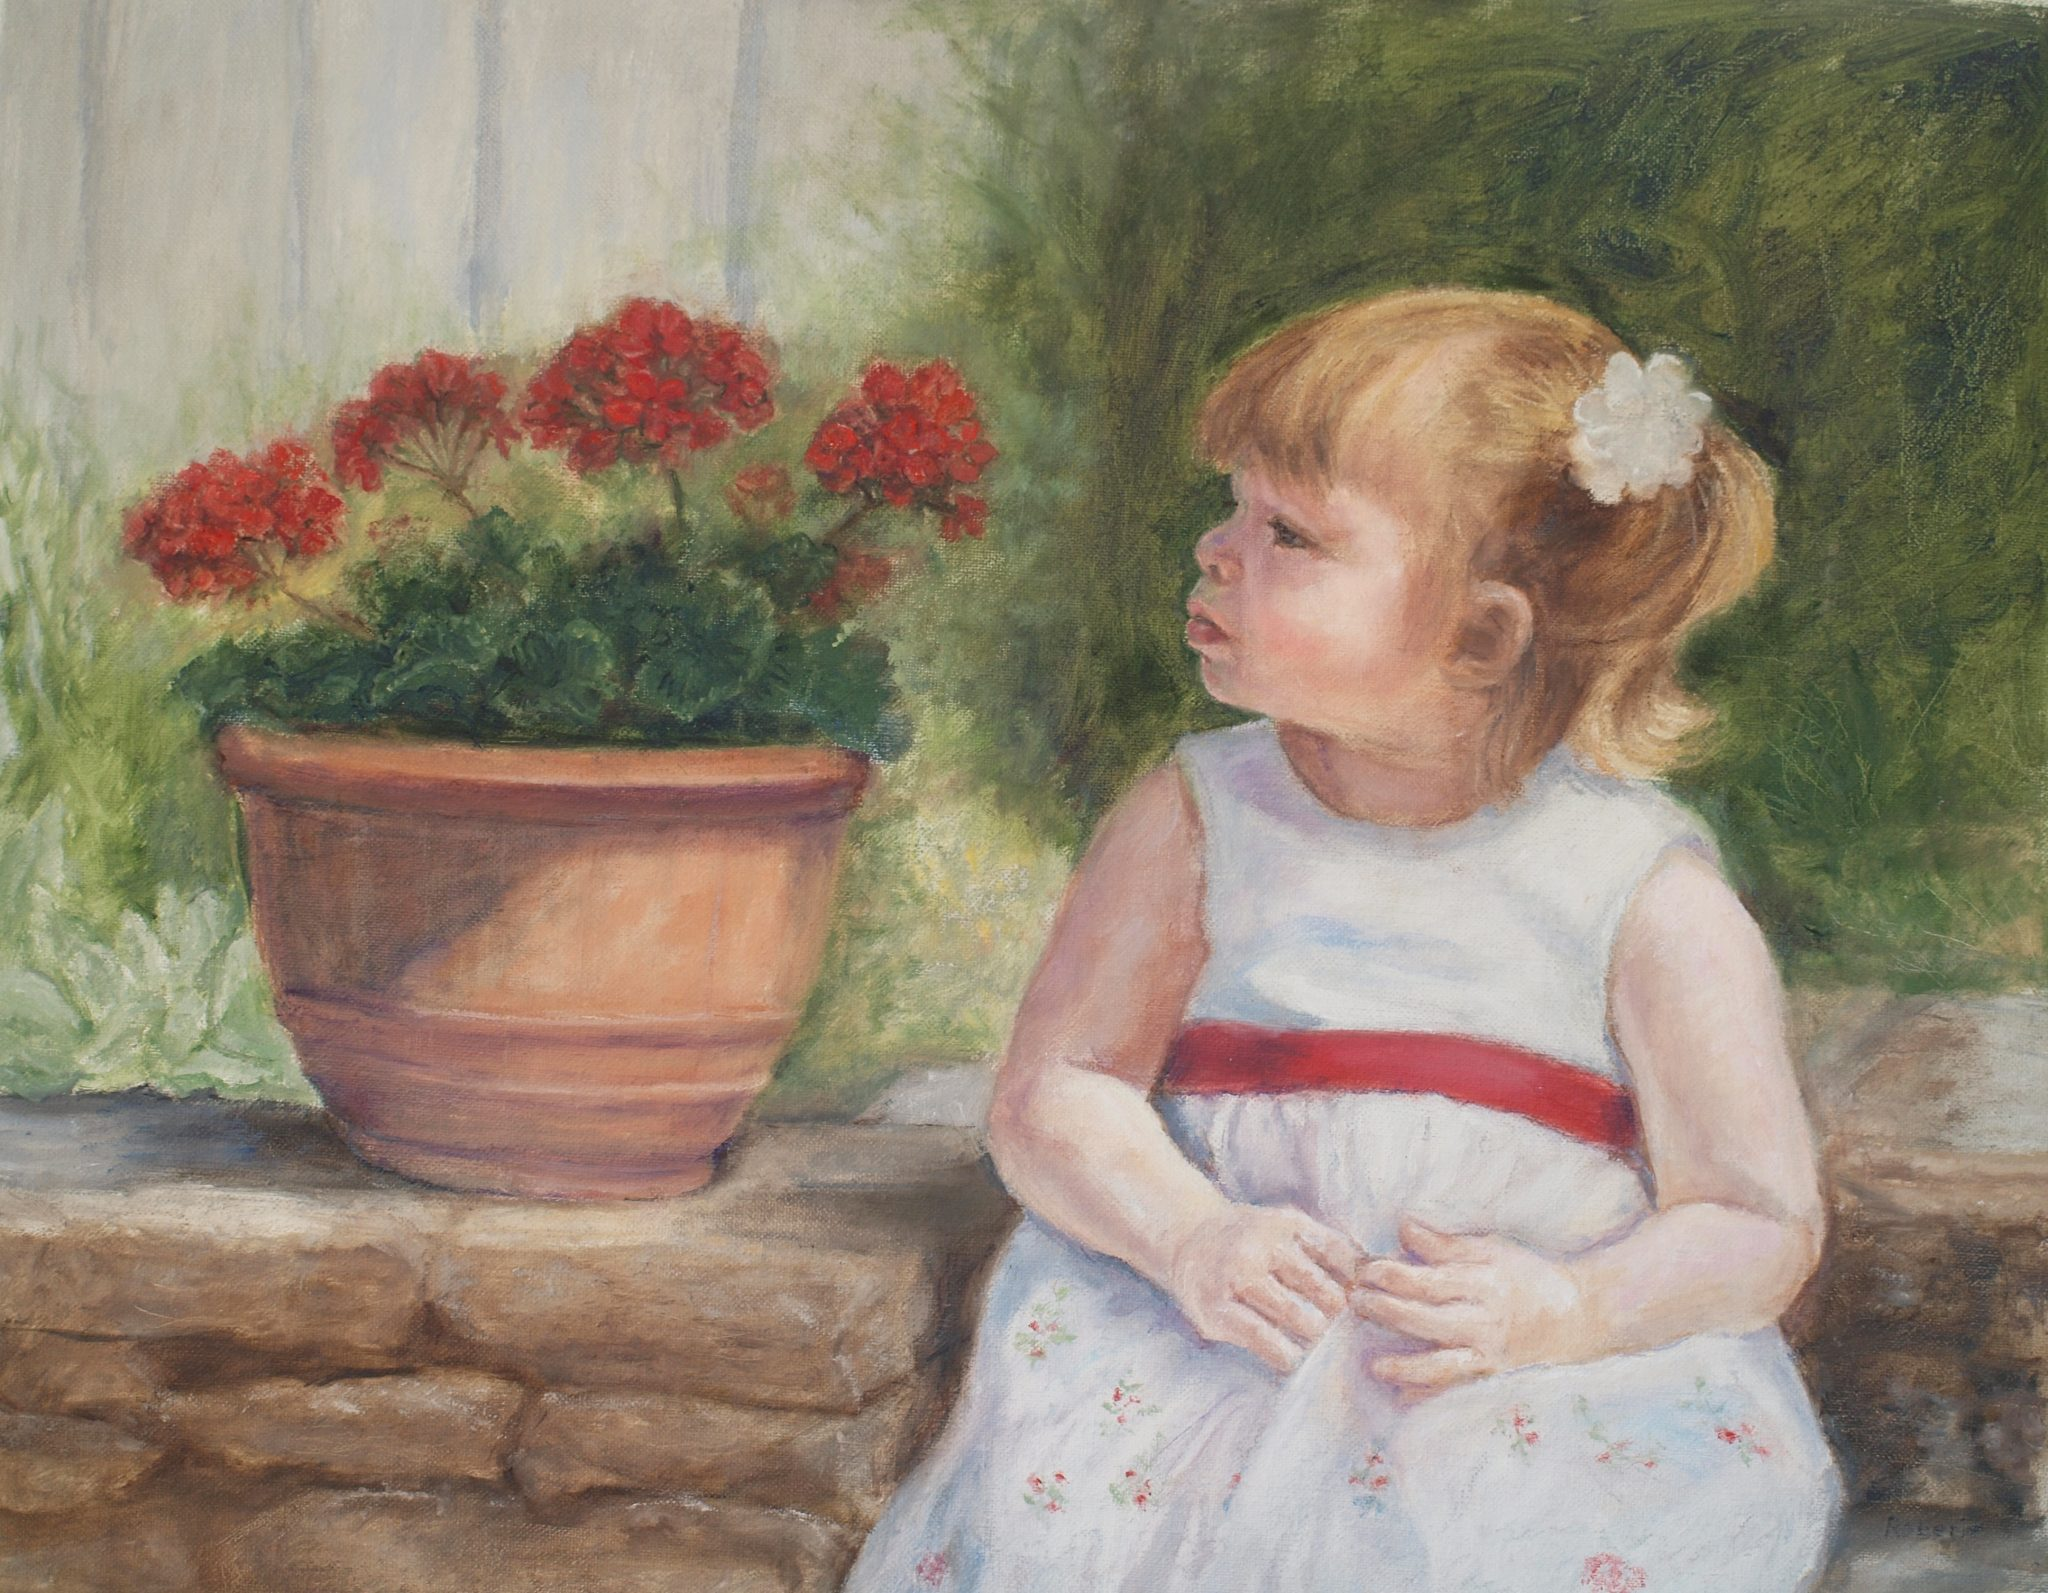 painting of a little girl sitting next to a pot of flowers